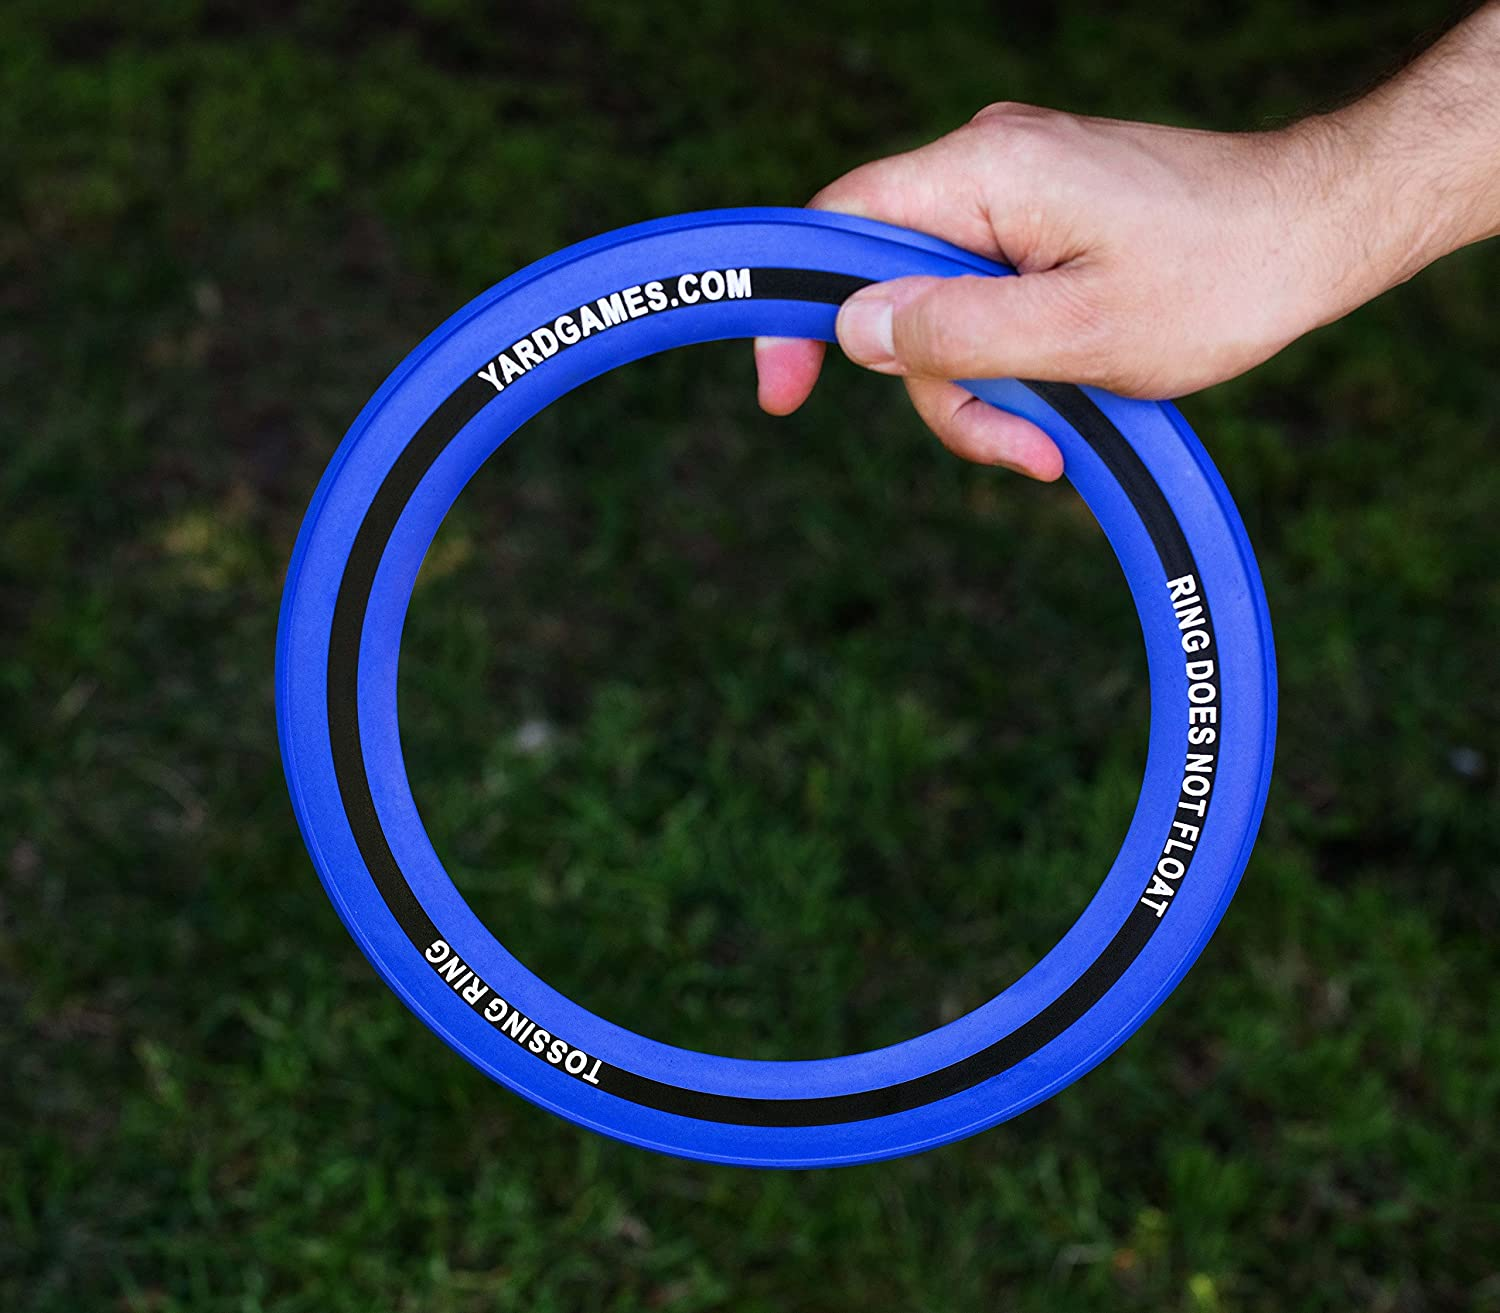 Yard Games 10 Soft Touch Flying Ring YardGames